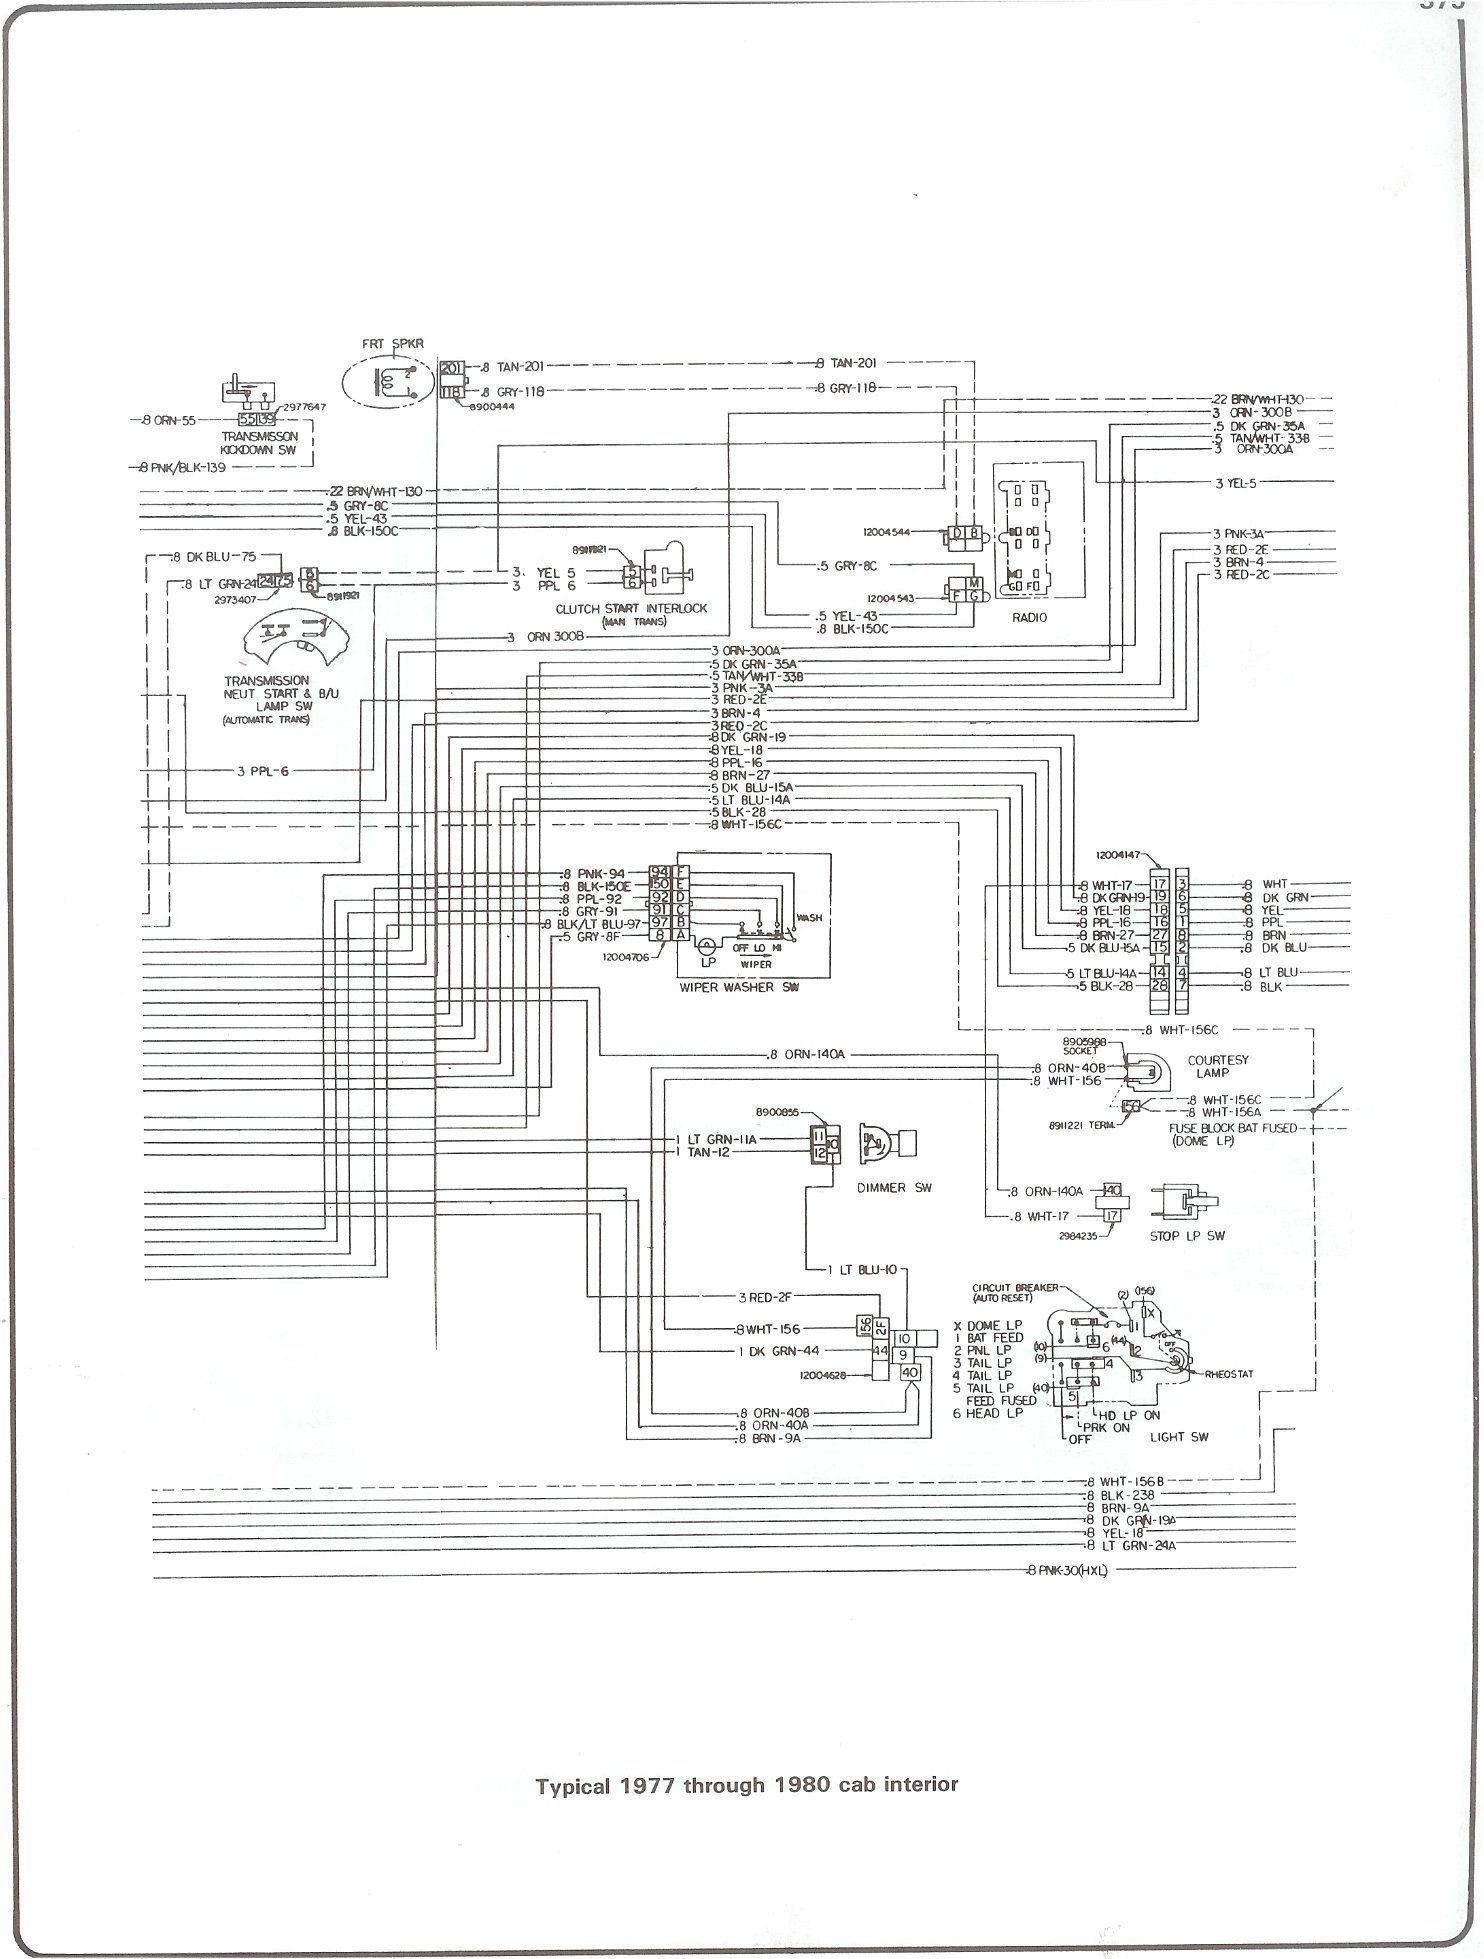 77 chevy c10 wiring diagram automotive wiring diagram library u2022 rh seigokanengland co uk 1990 chevy truck alternator wiring 89 chevy truck alternator wiring